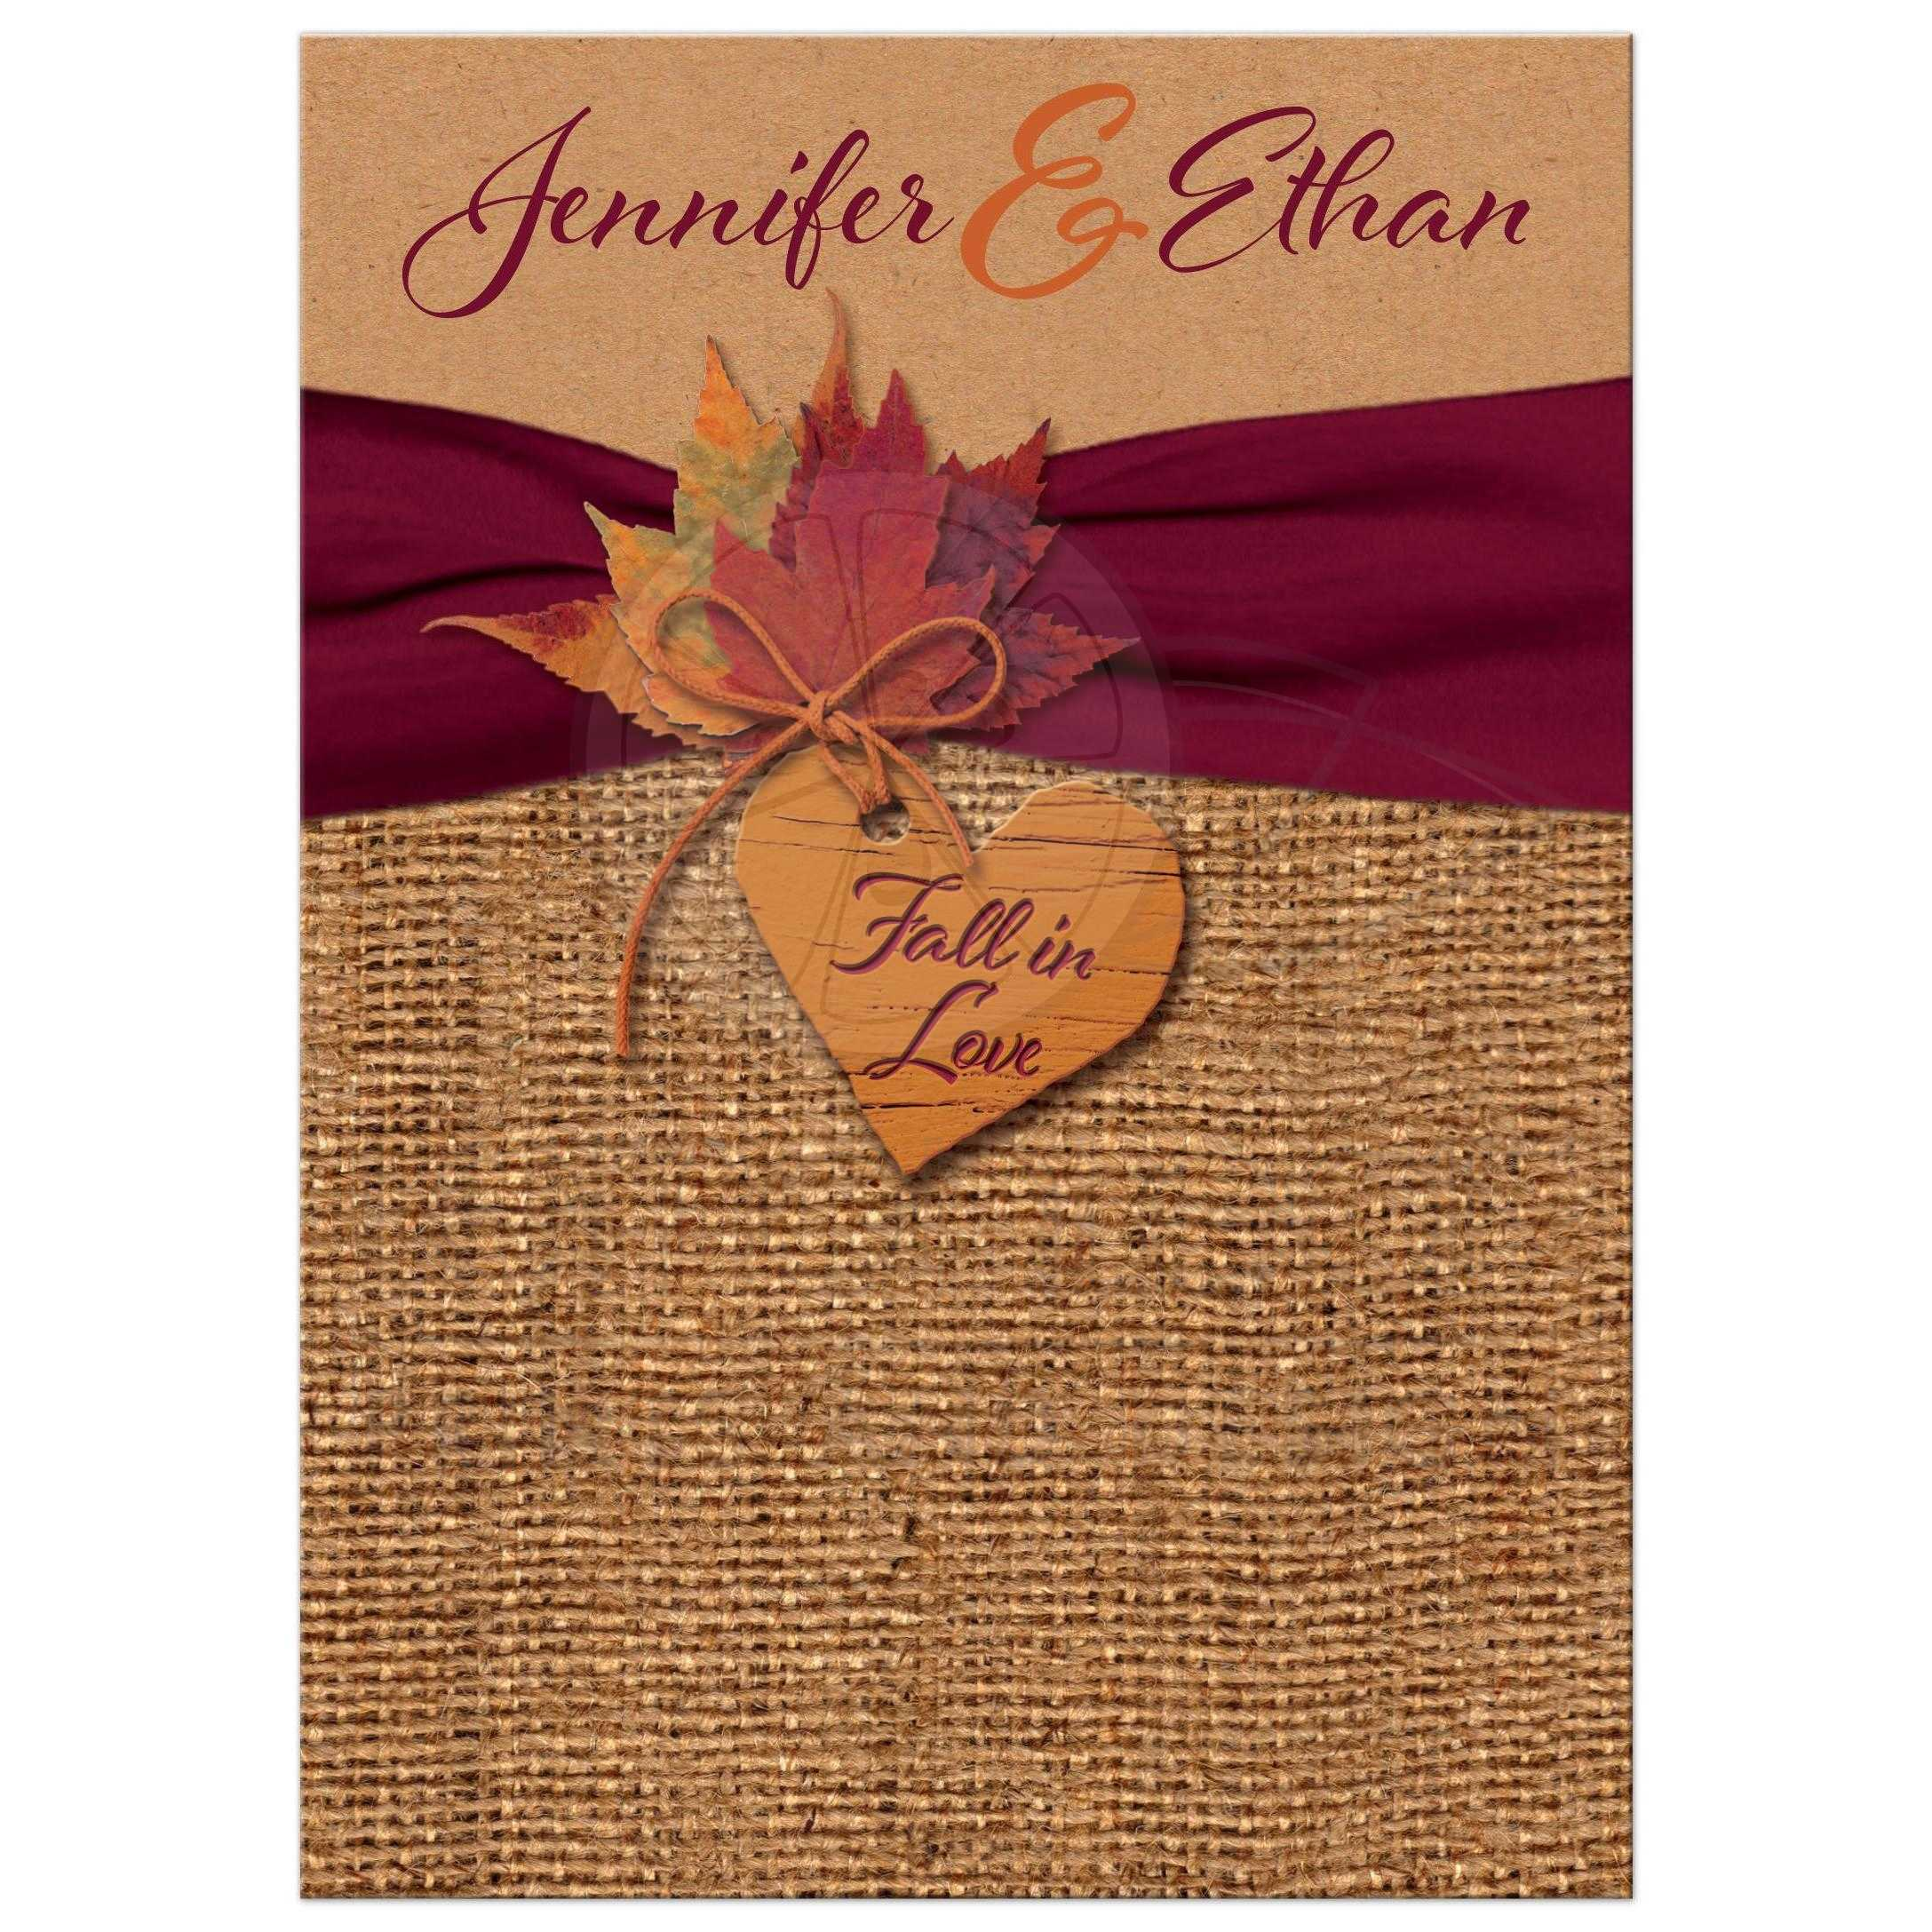 Hilarious Rustic Burlap Kraft Paper Wedding Invitations Love Wedding Invitation Faux Faux Kraft Paper Fall Wedding Invitations Ideas Fall Wedding Invitations Packages A Burgundy Painted Wood Heart Fal wedding Fall Wedding Invitations